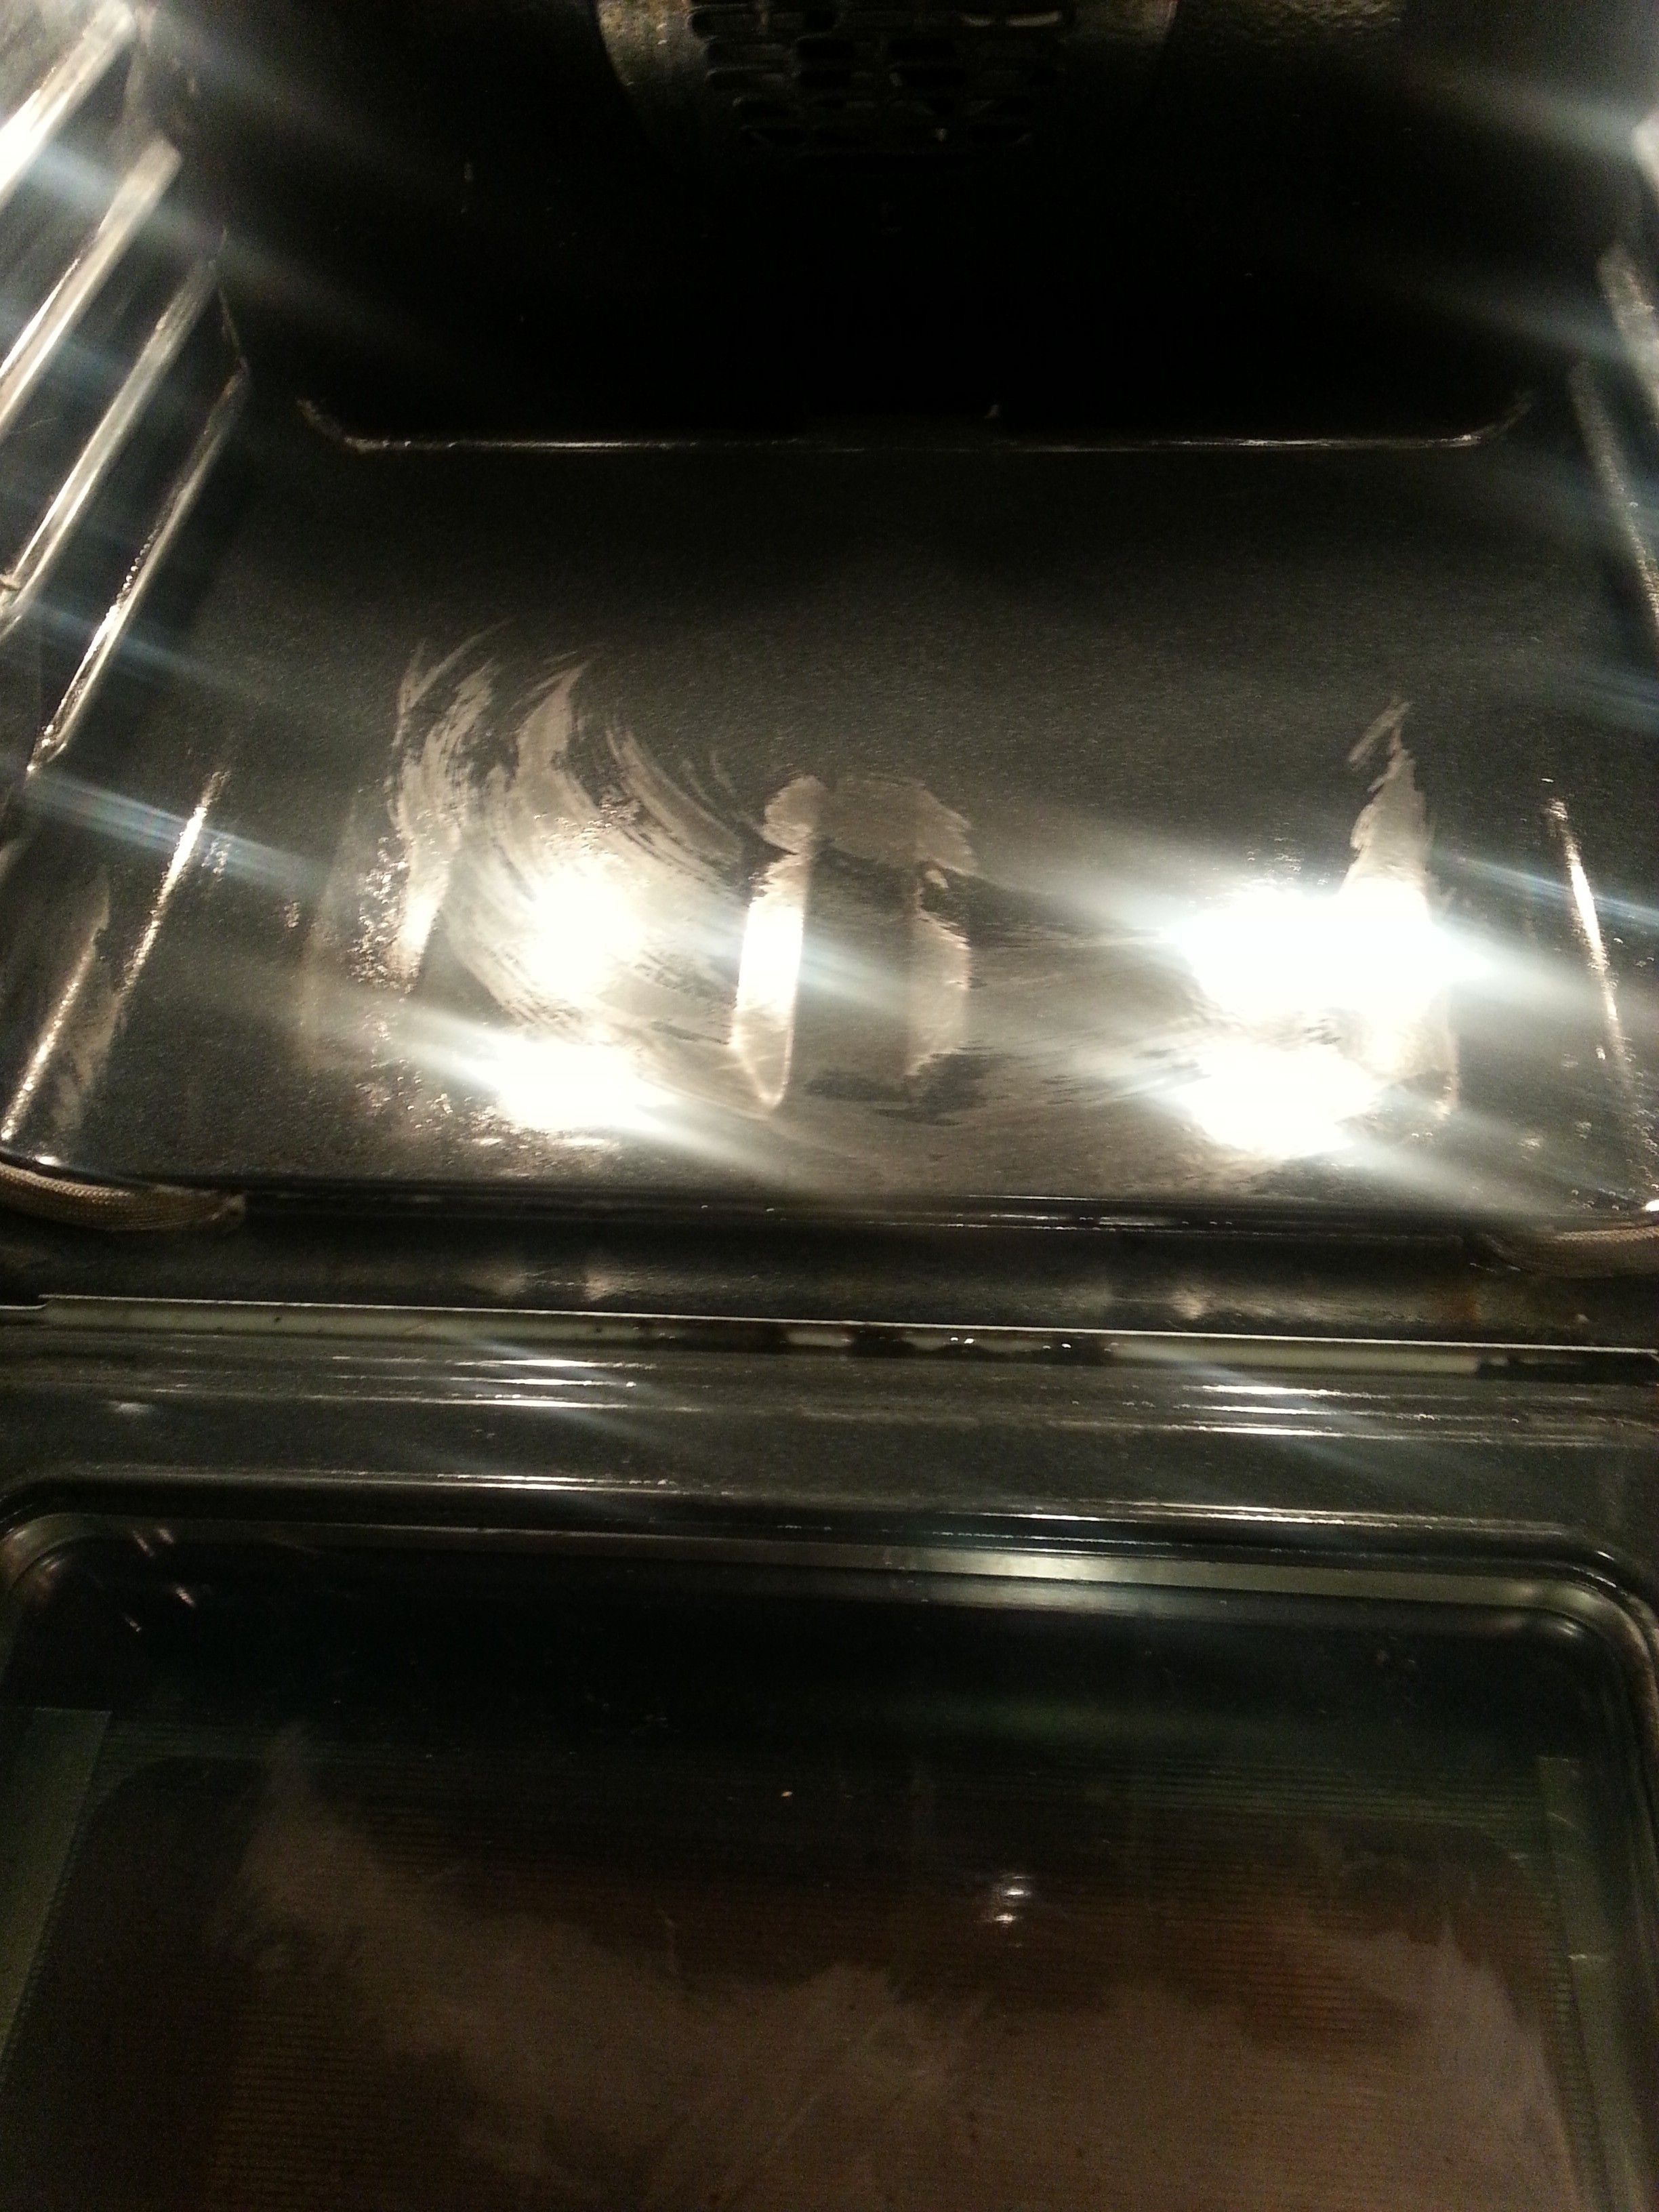 20131118_200140 Oven cleaning, Cleaning hacks, Homemade